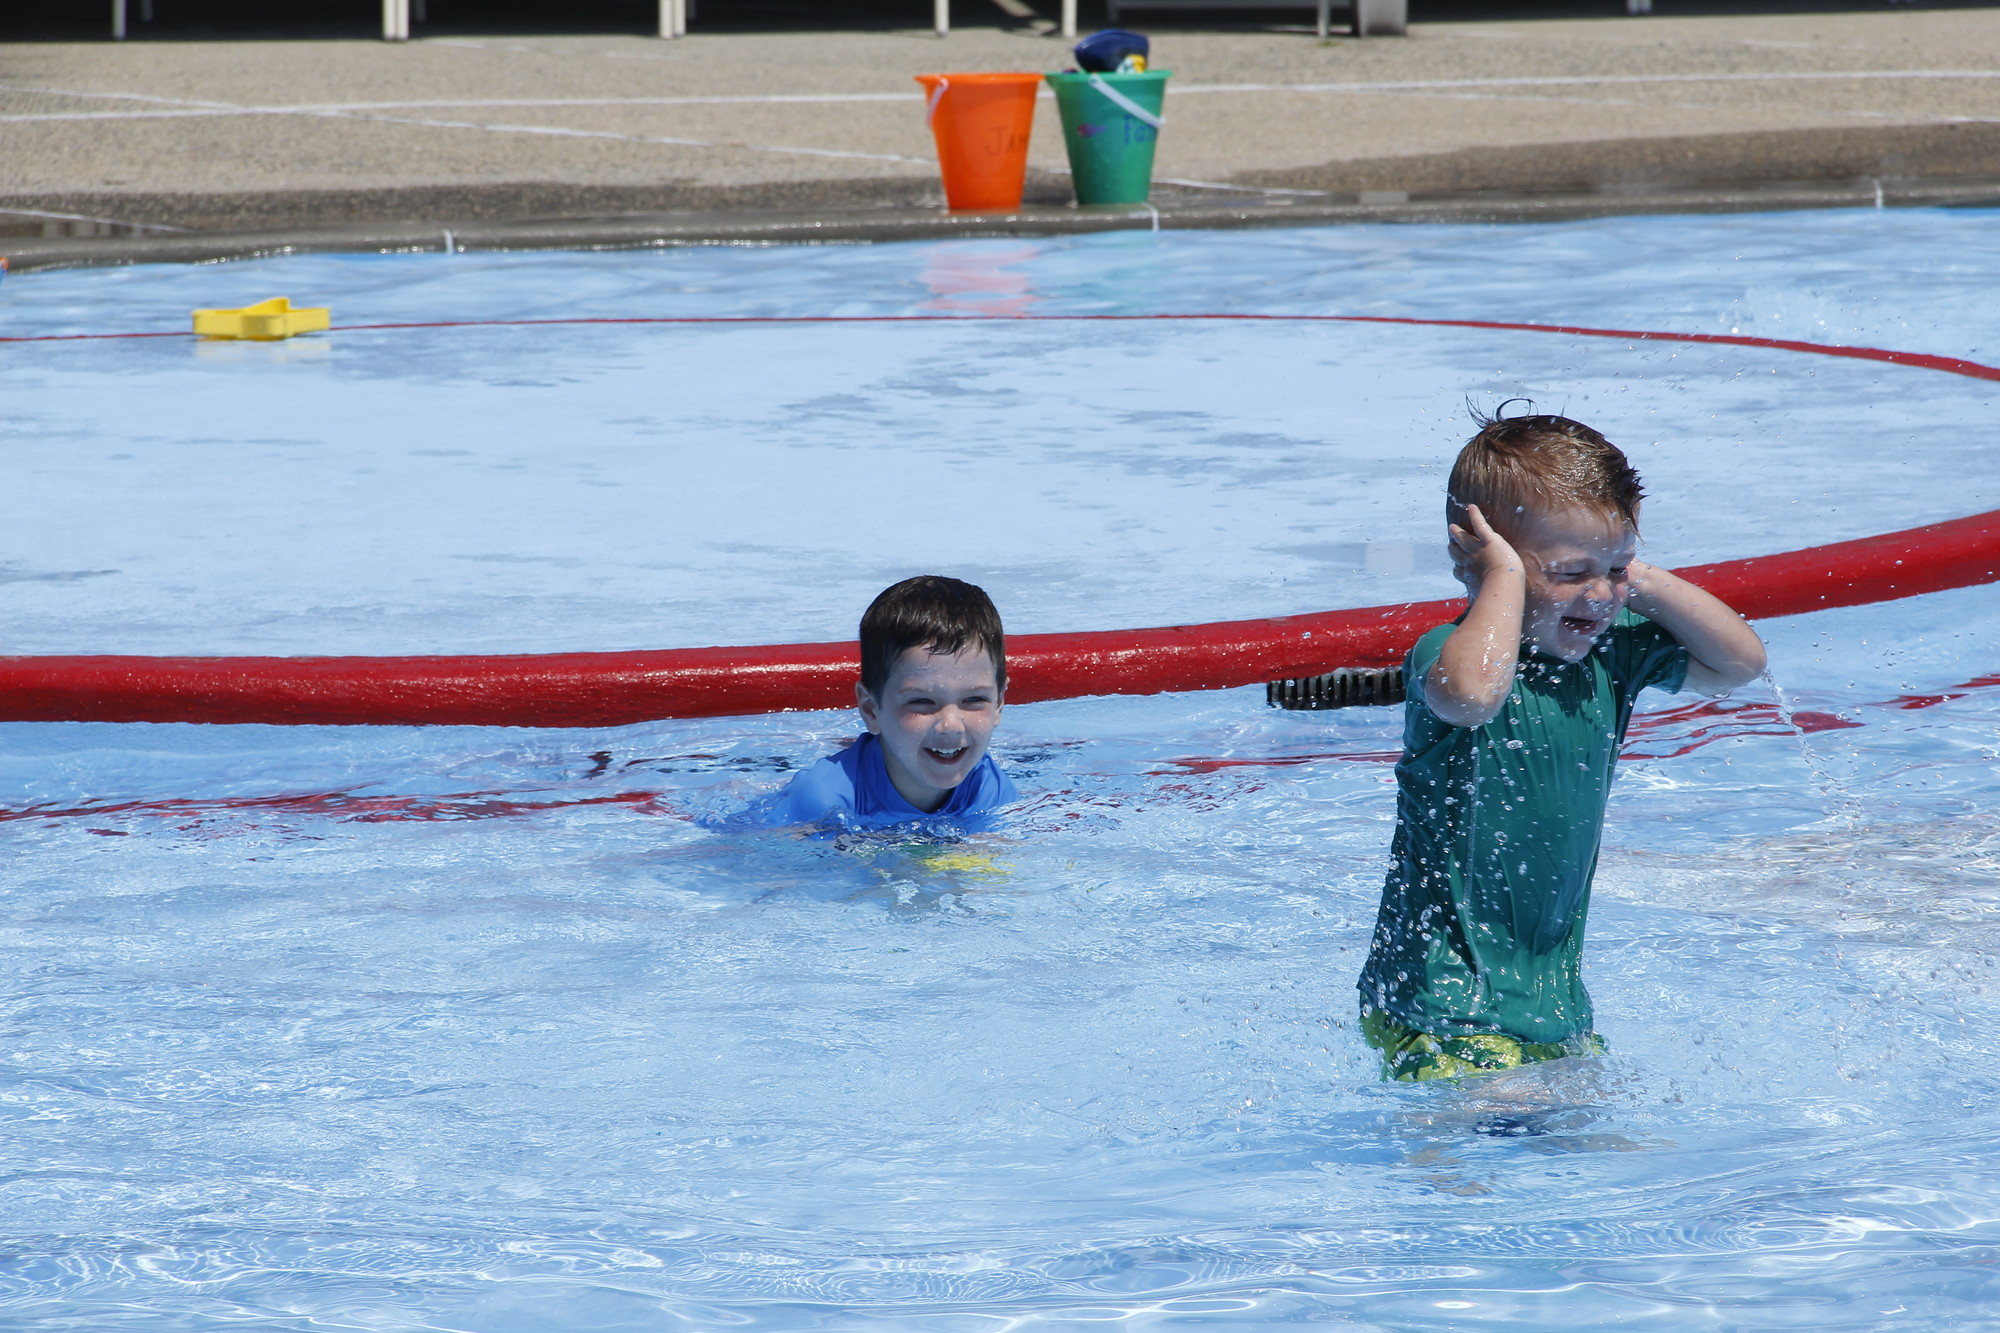 James Wisniewski, 5, and his brother Patrick, 3, had a great time splashing around in the pool at Veterans Memorial Park.